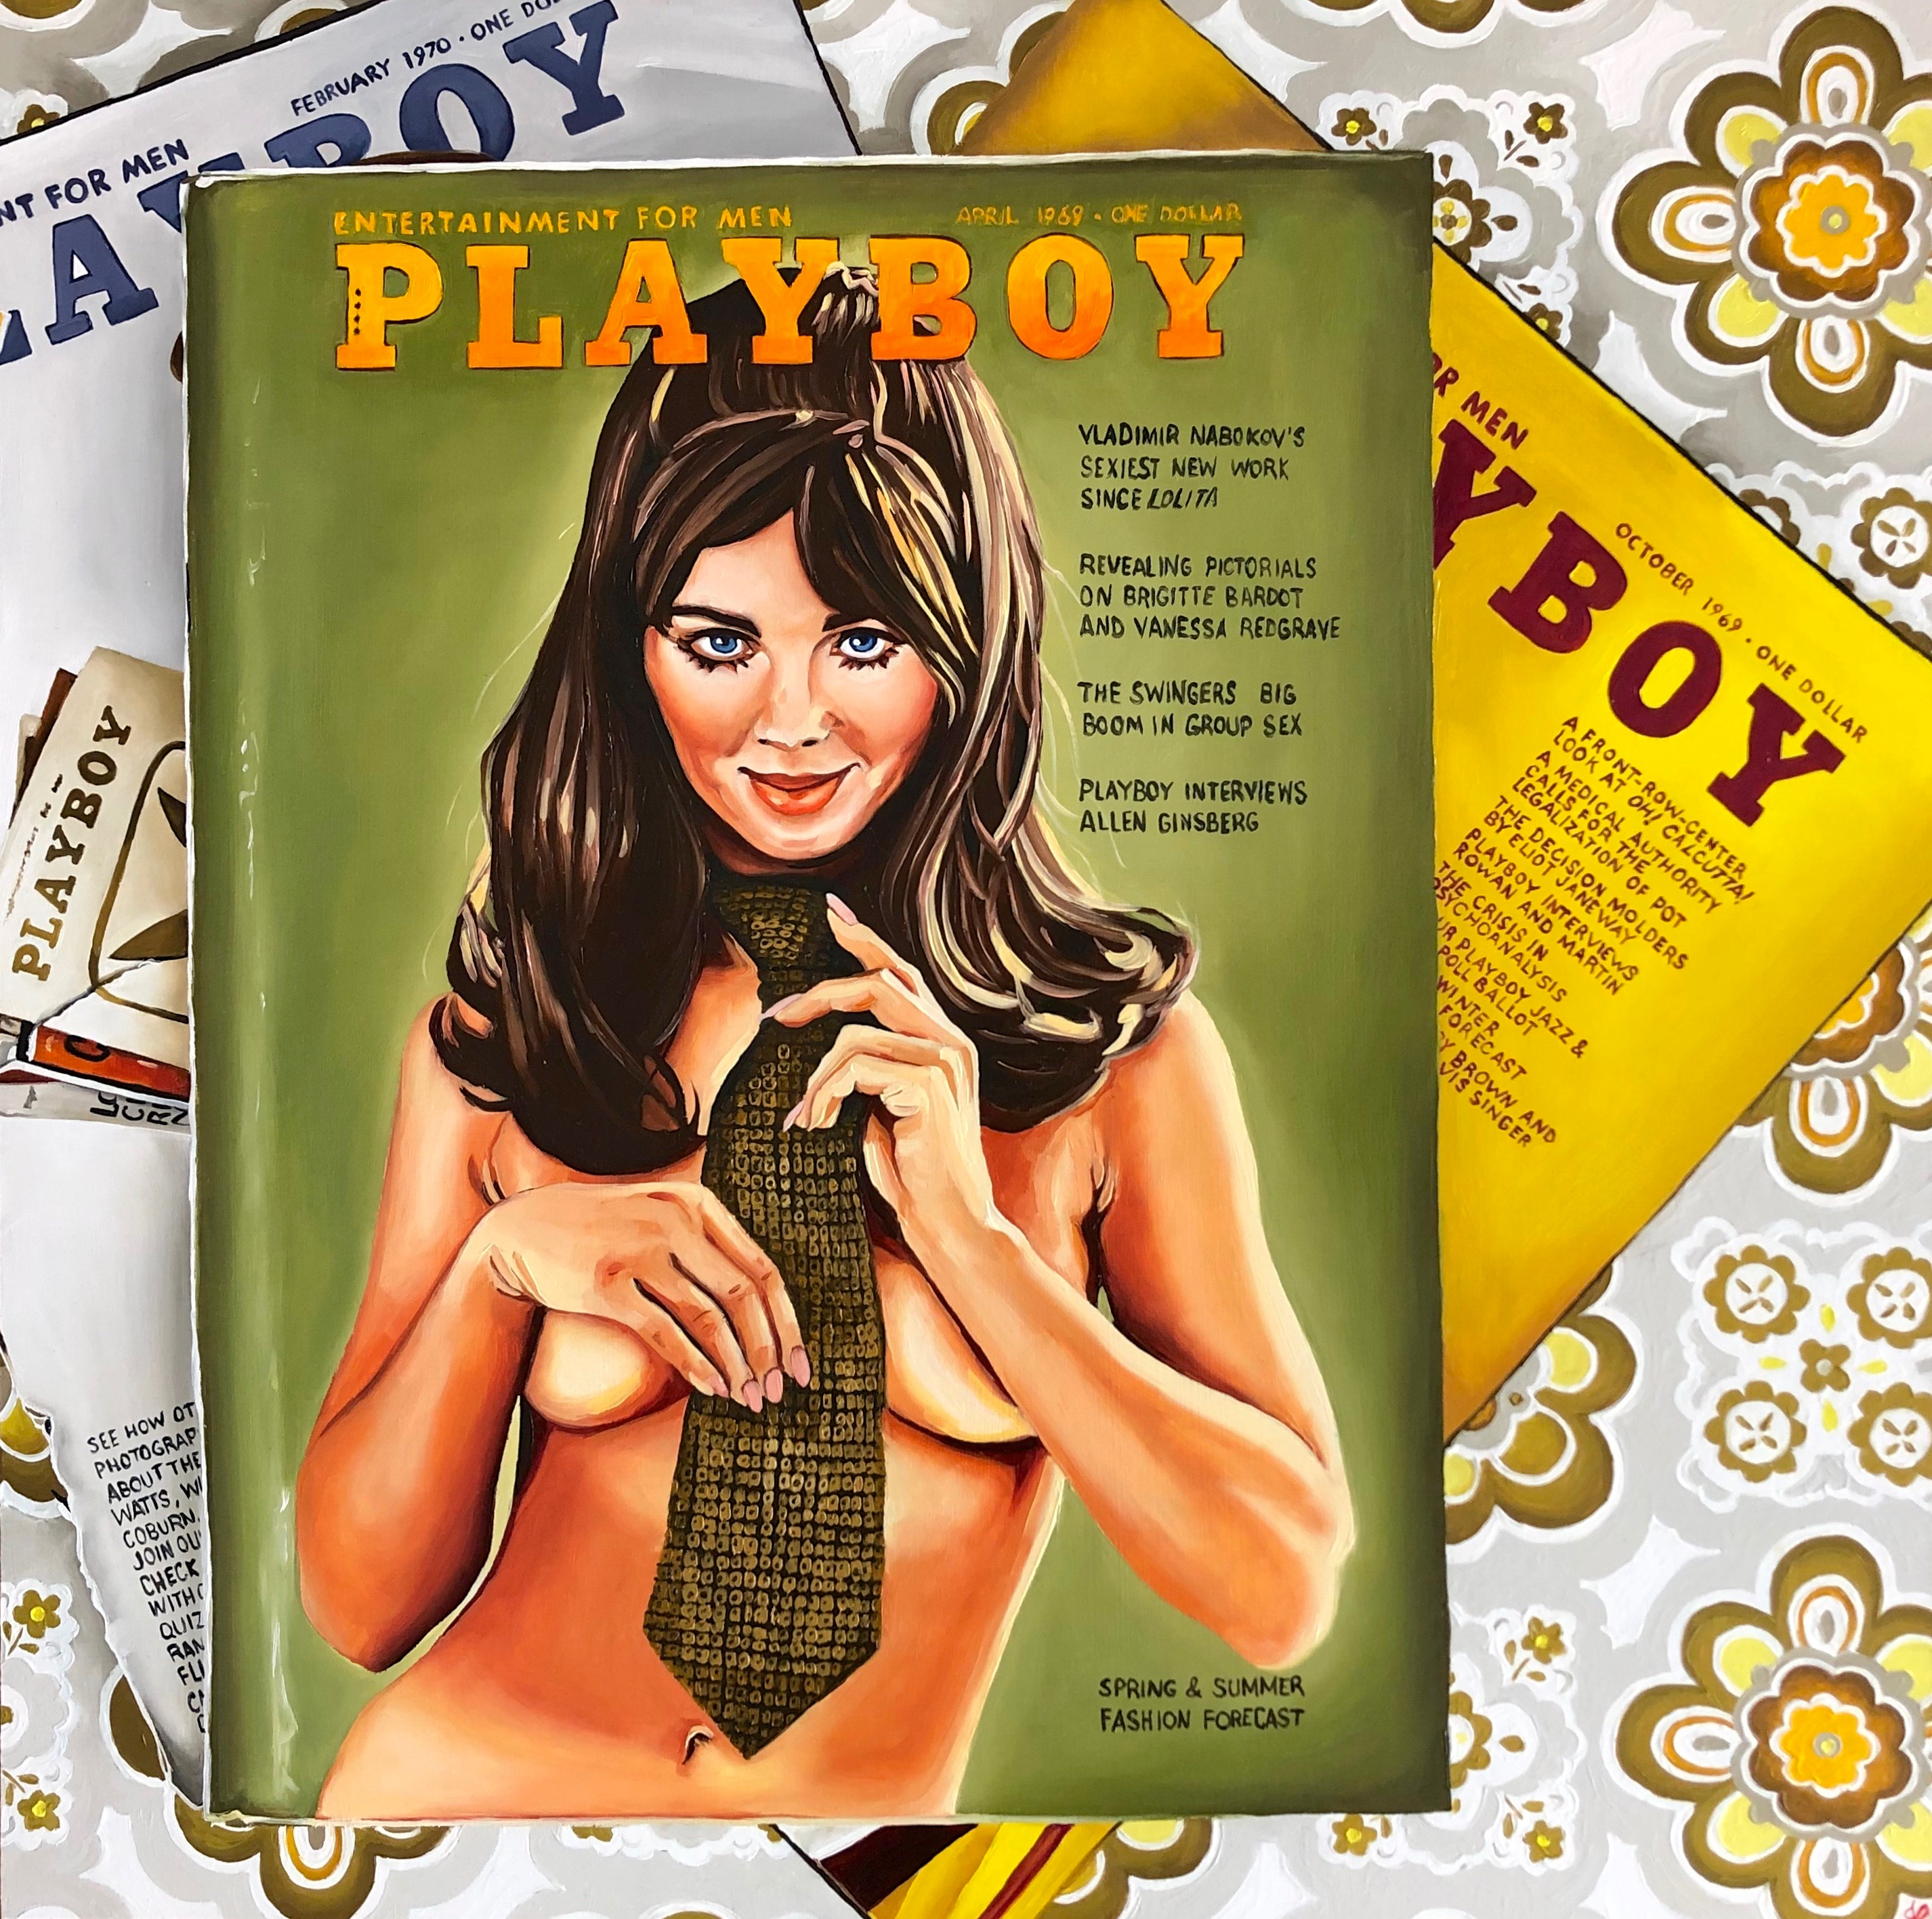 Stack of vintage Playboy (panel 2)